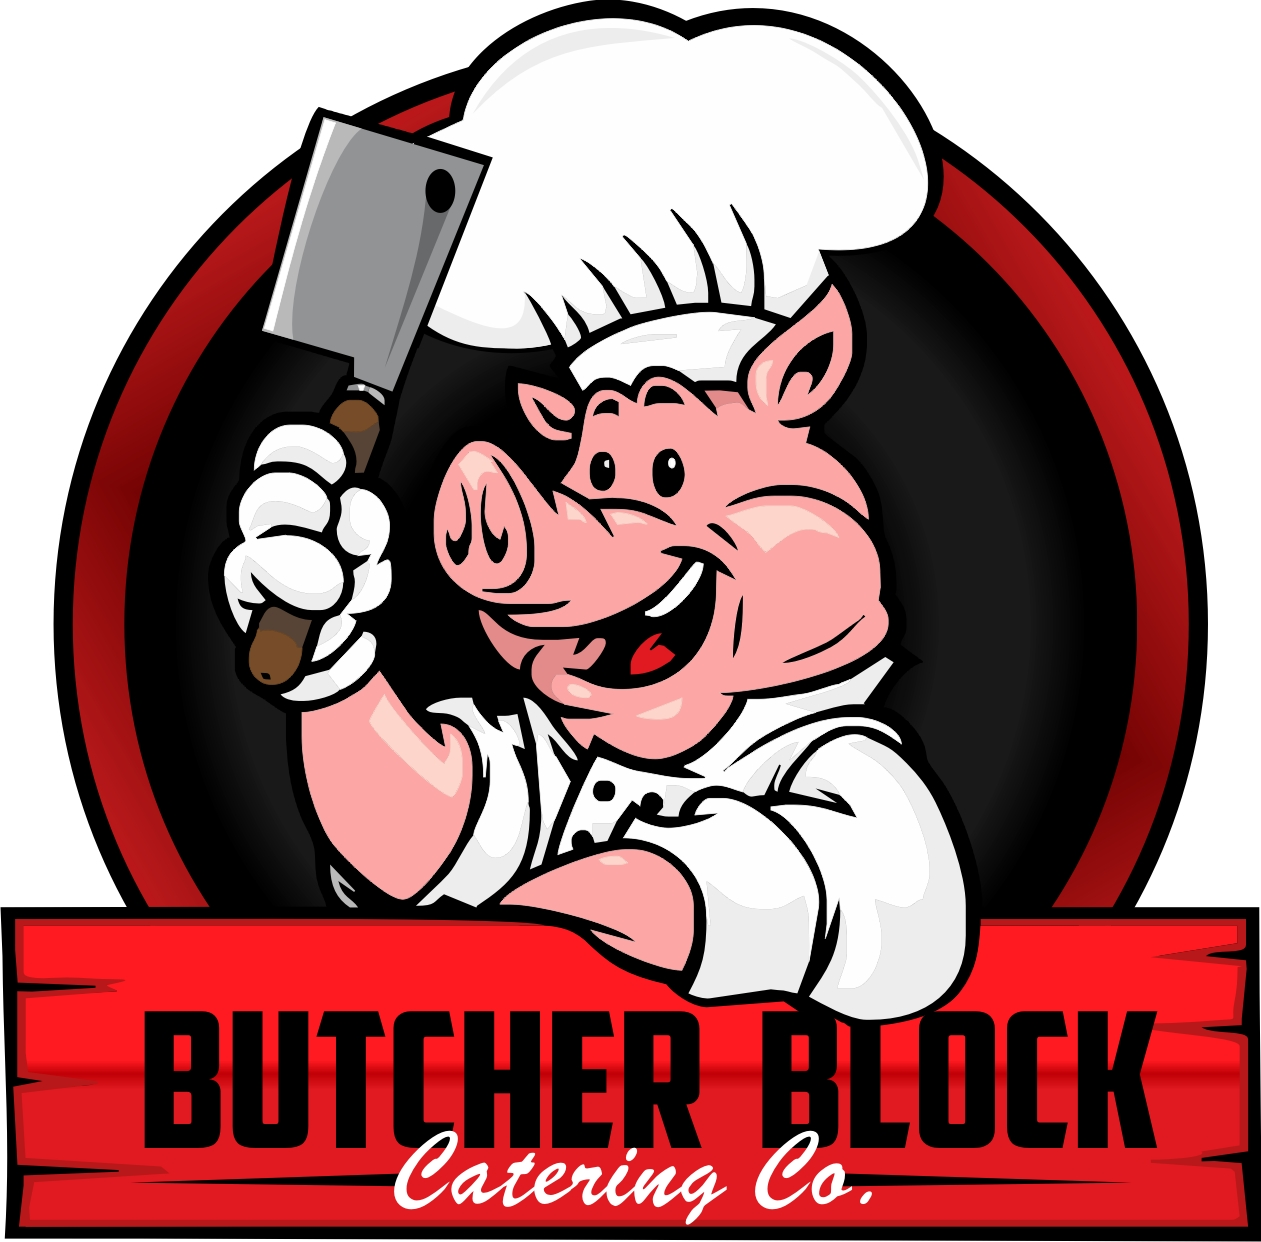 Butcher Block Catering Logo